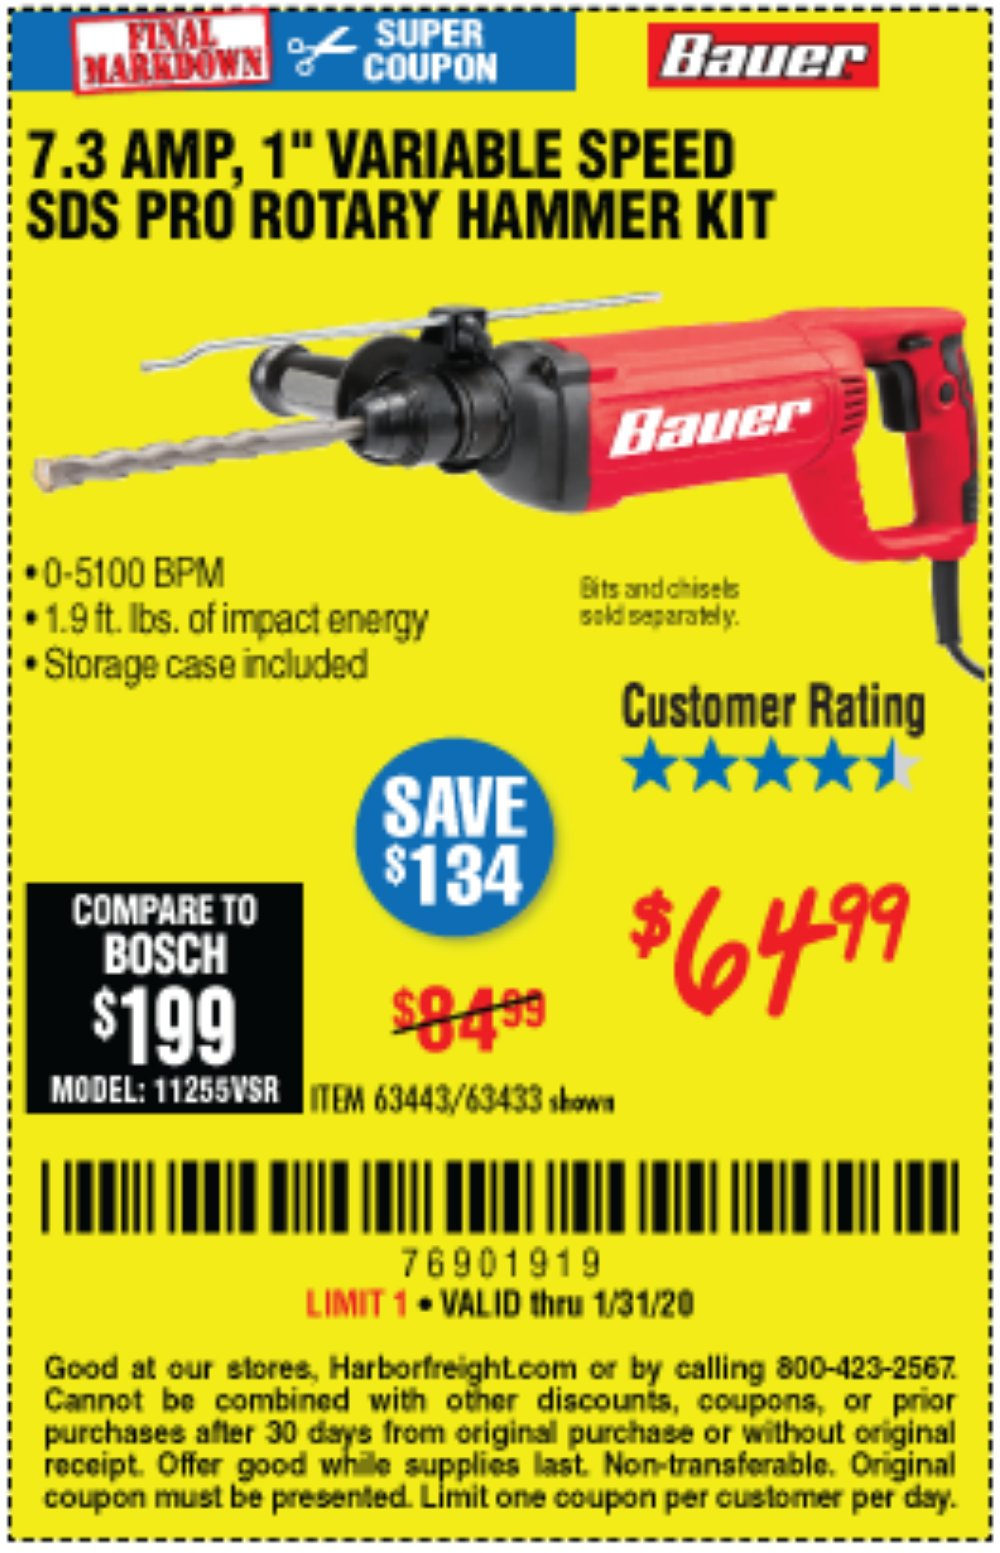 Harbor Freight Coupon, HF Coupons - 7.3 Amp, 1